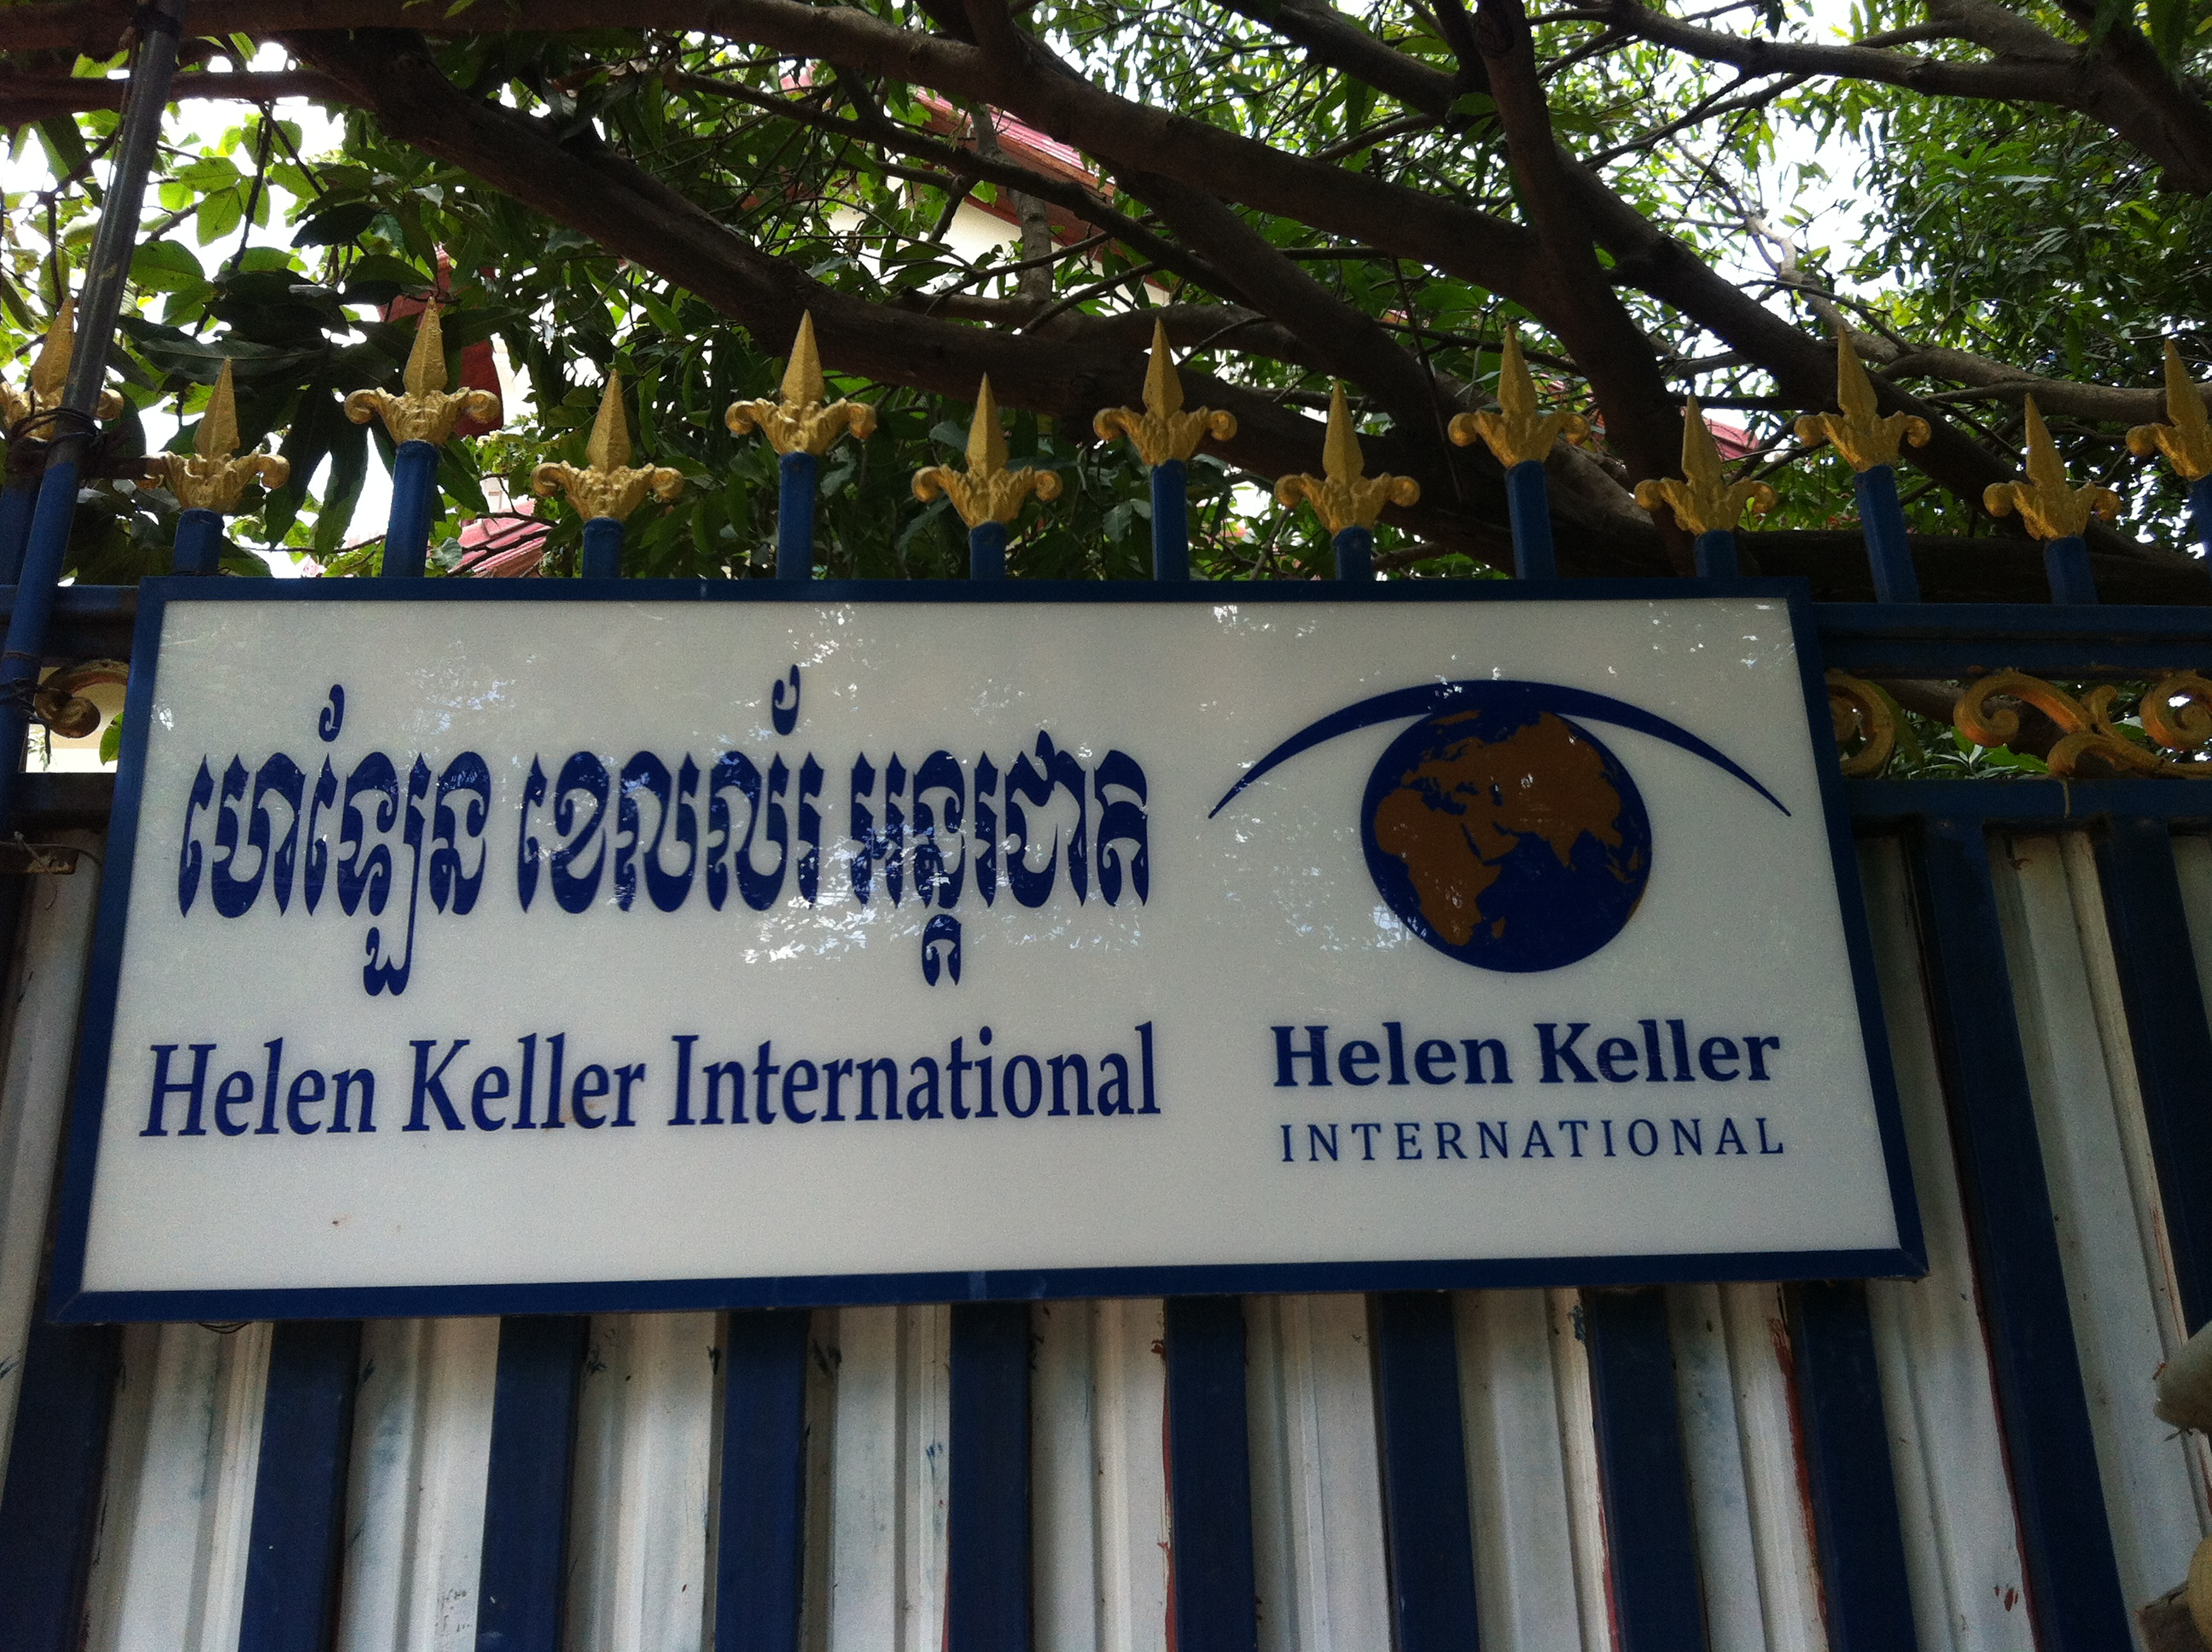 Fish on farms an introduction cambodia for Keller fish farms